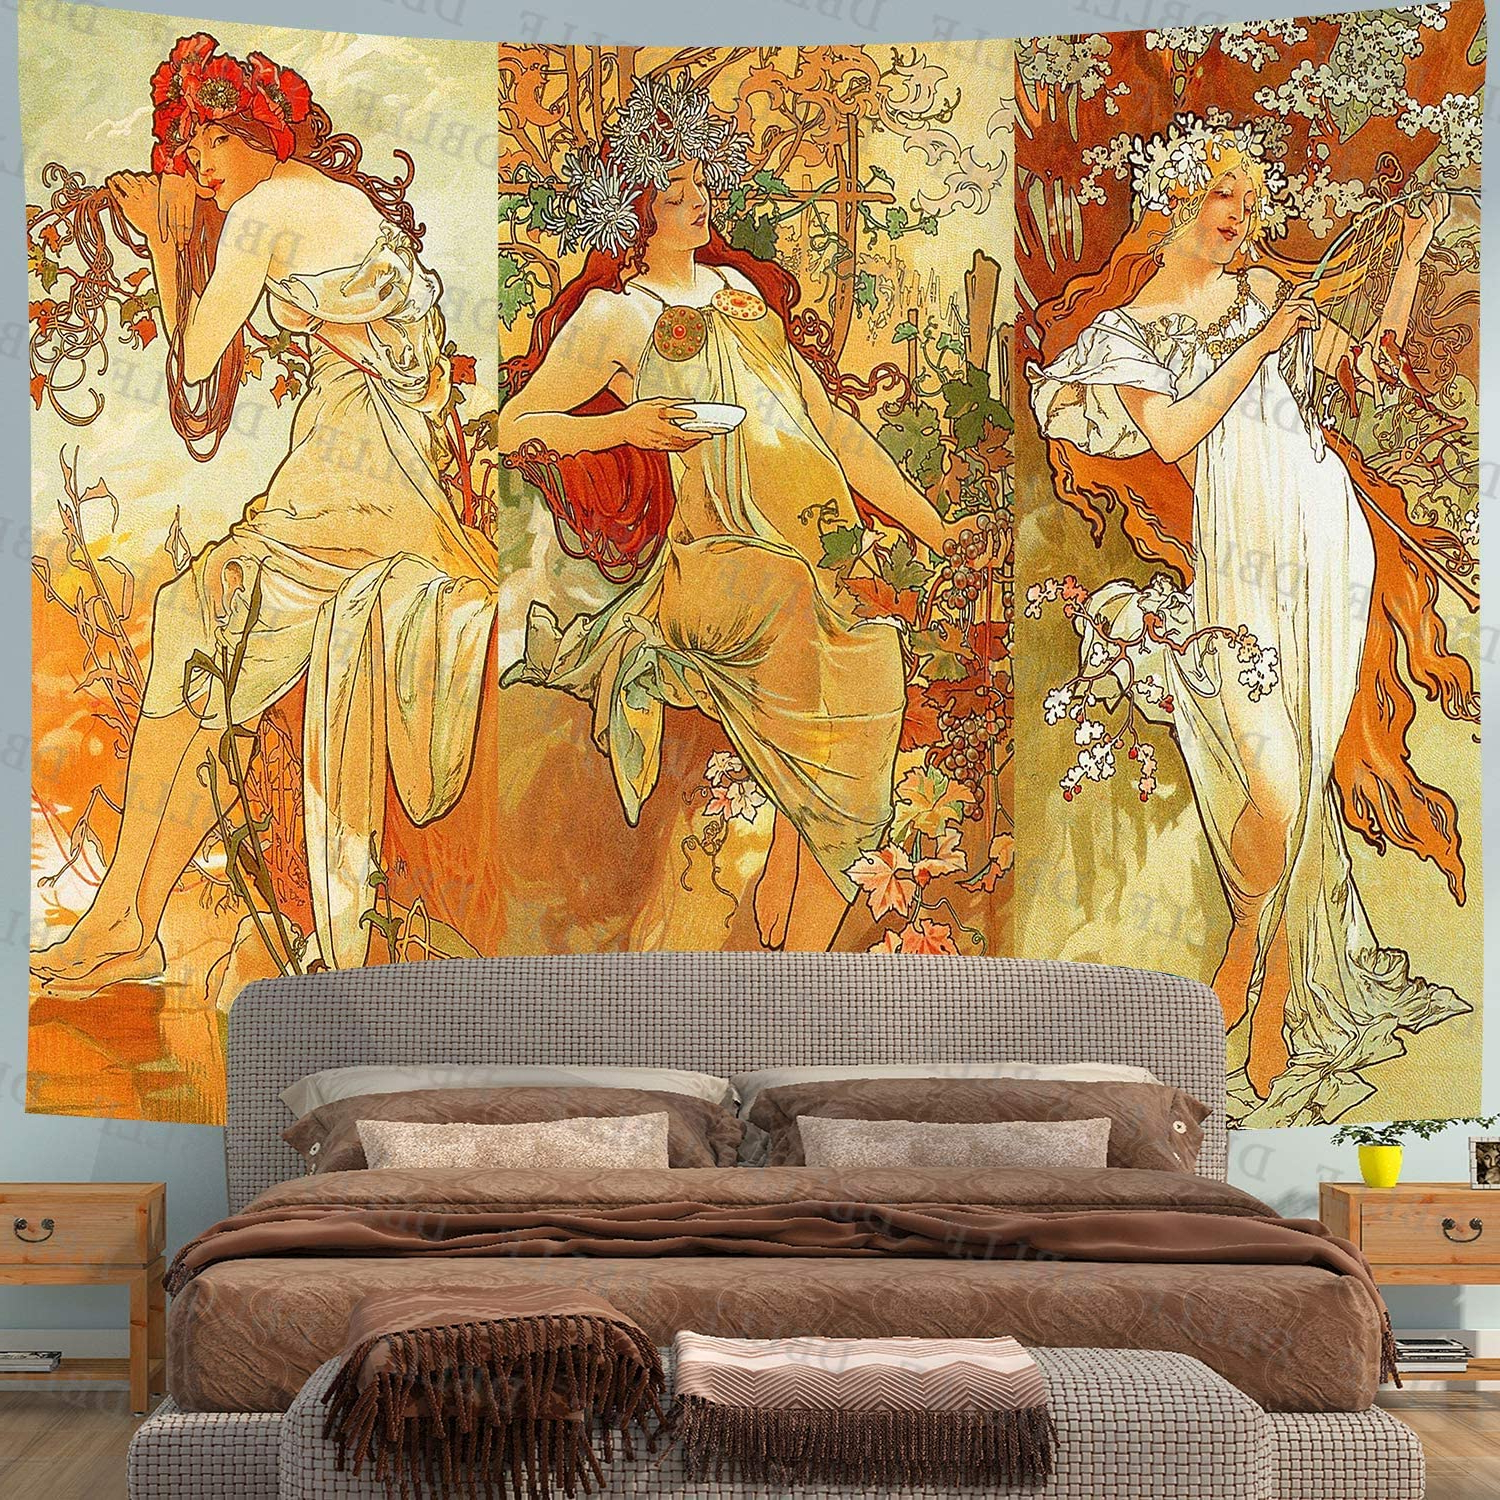 Blended Fabric Mucha Spring European Wall Hangings With Regard To Well Known Dbllf Art Nouveau Lady Tapestry Medieval Optimized Style Tapestry Artwork Wall Hanging Vintage Alphonse Mucha Autumn Paris Fall Nouveau Vineyard Flirt (View 17 of 20)